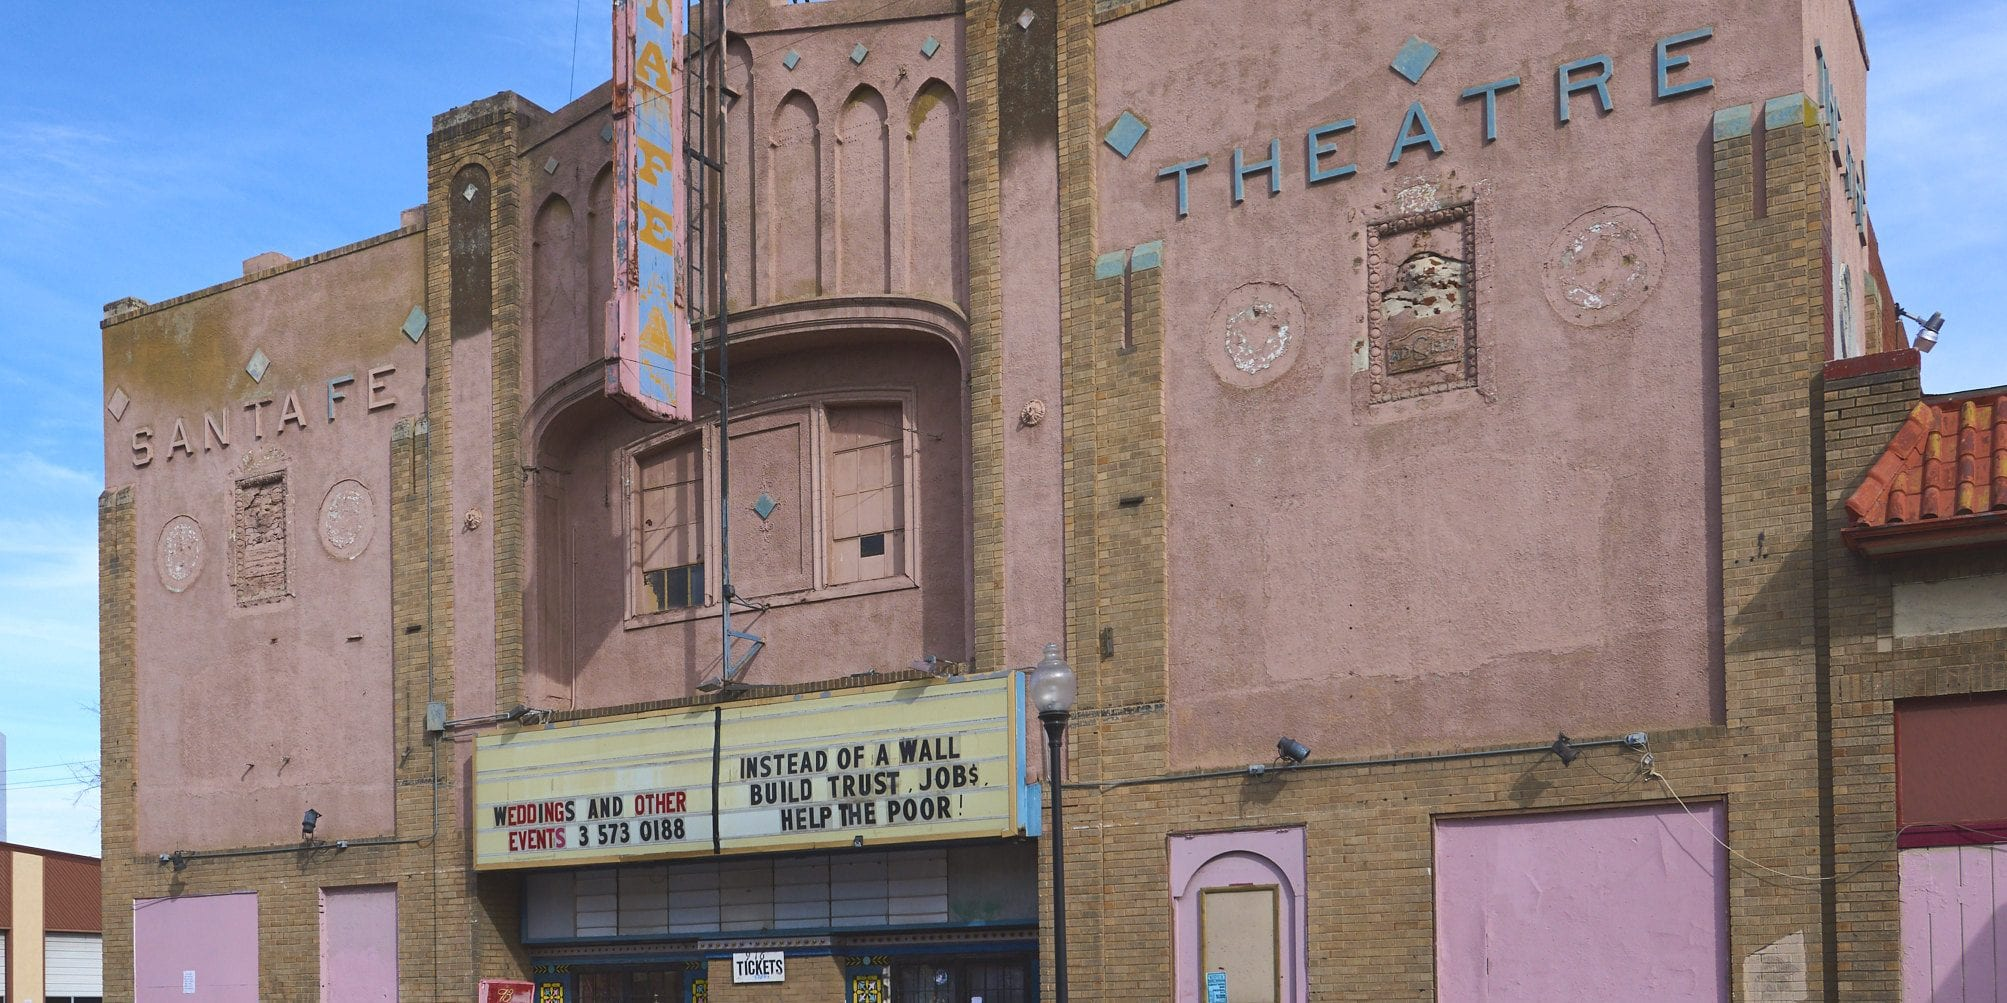 image of Santa Fe Theater in Denver